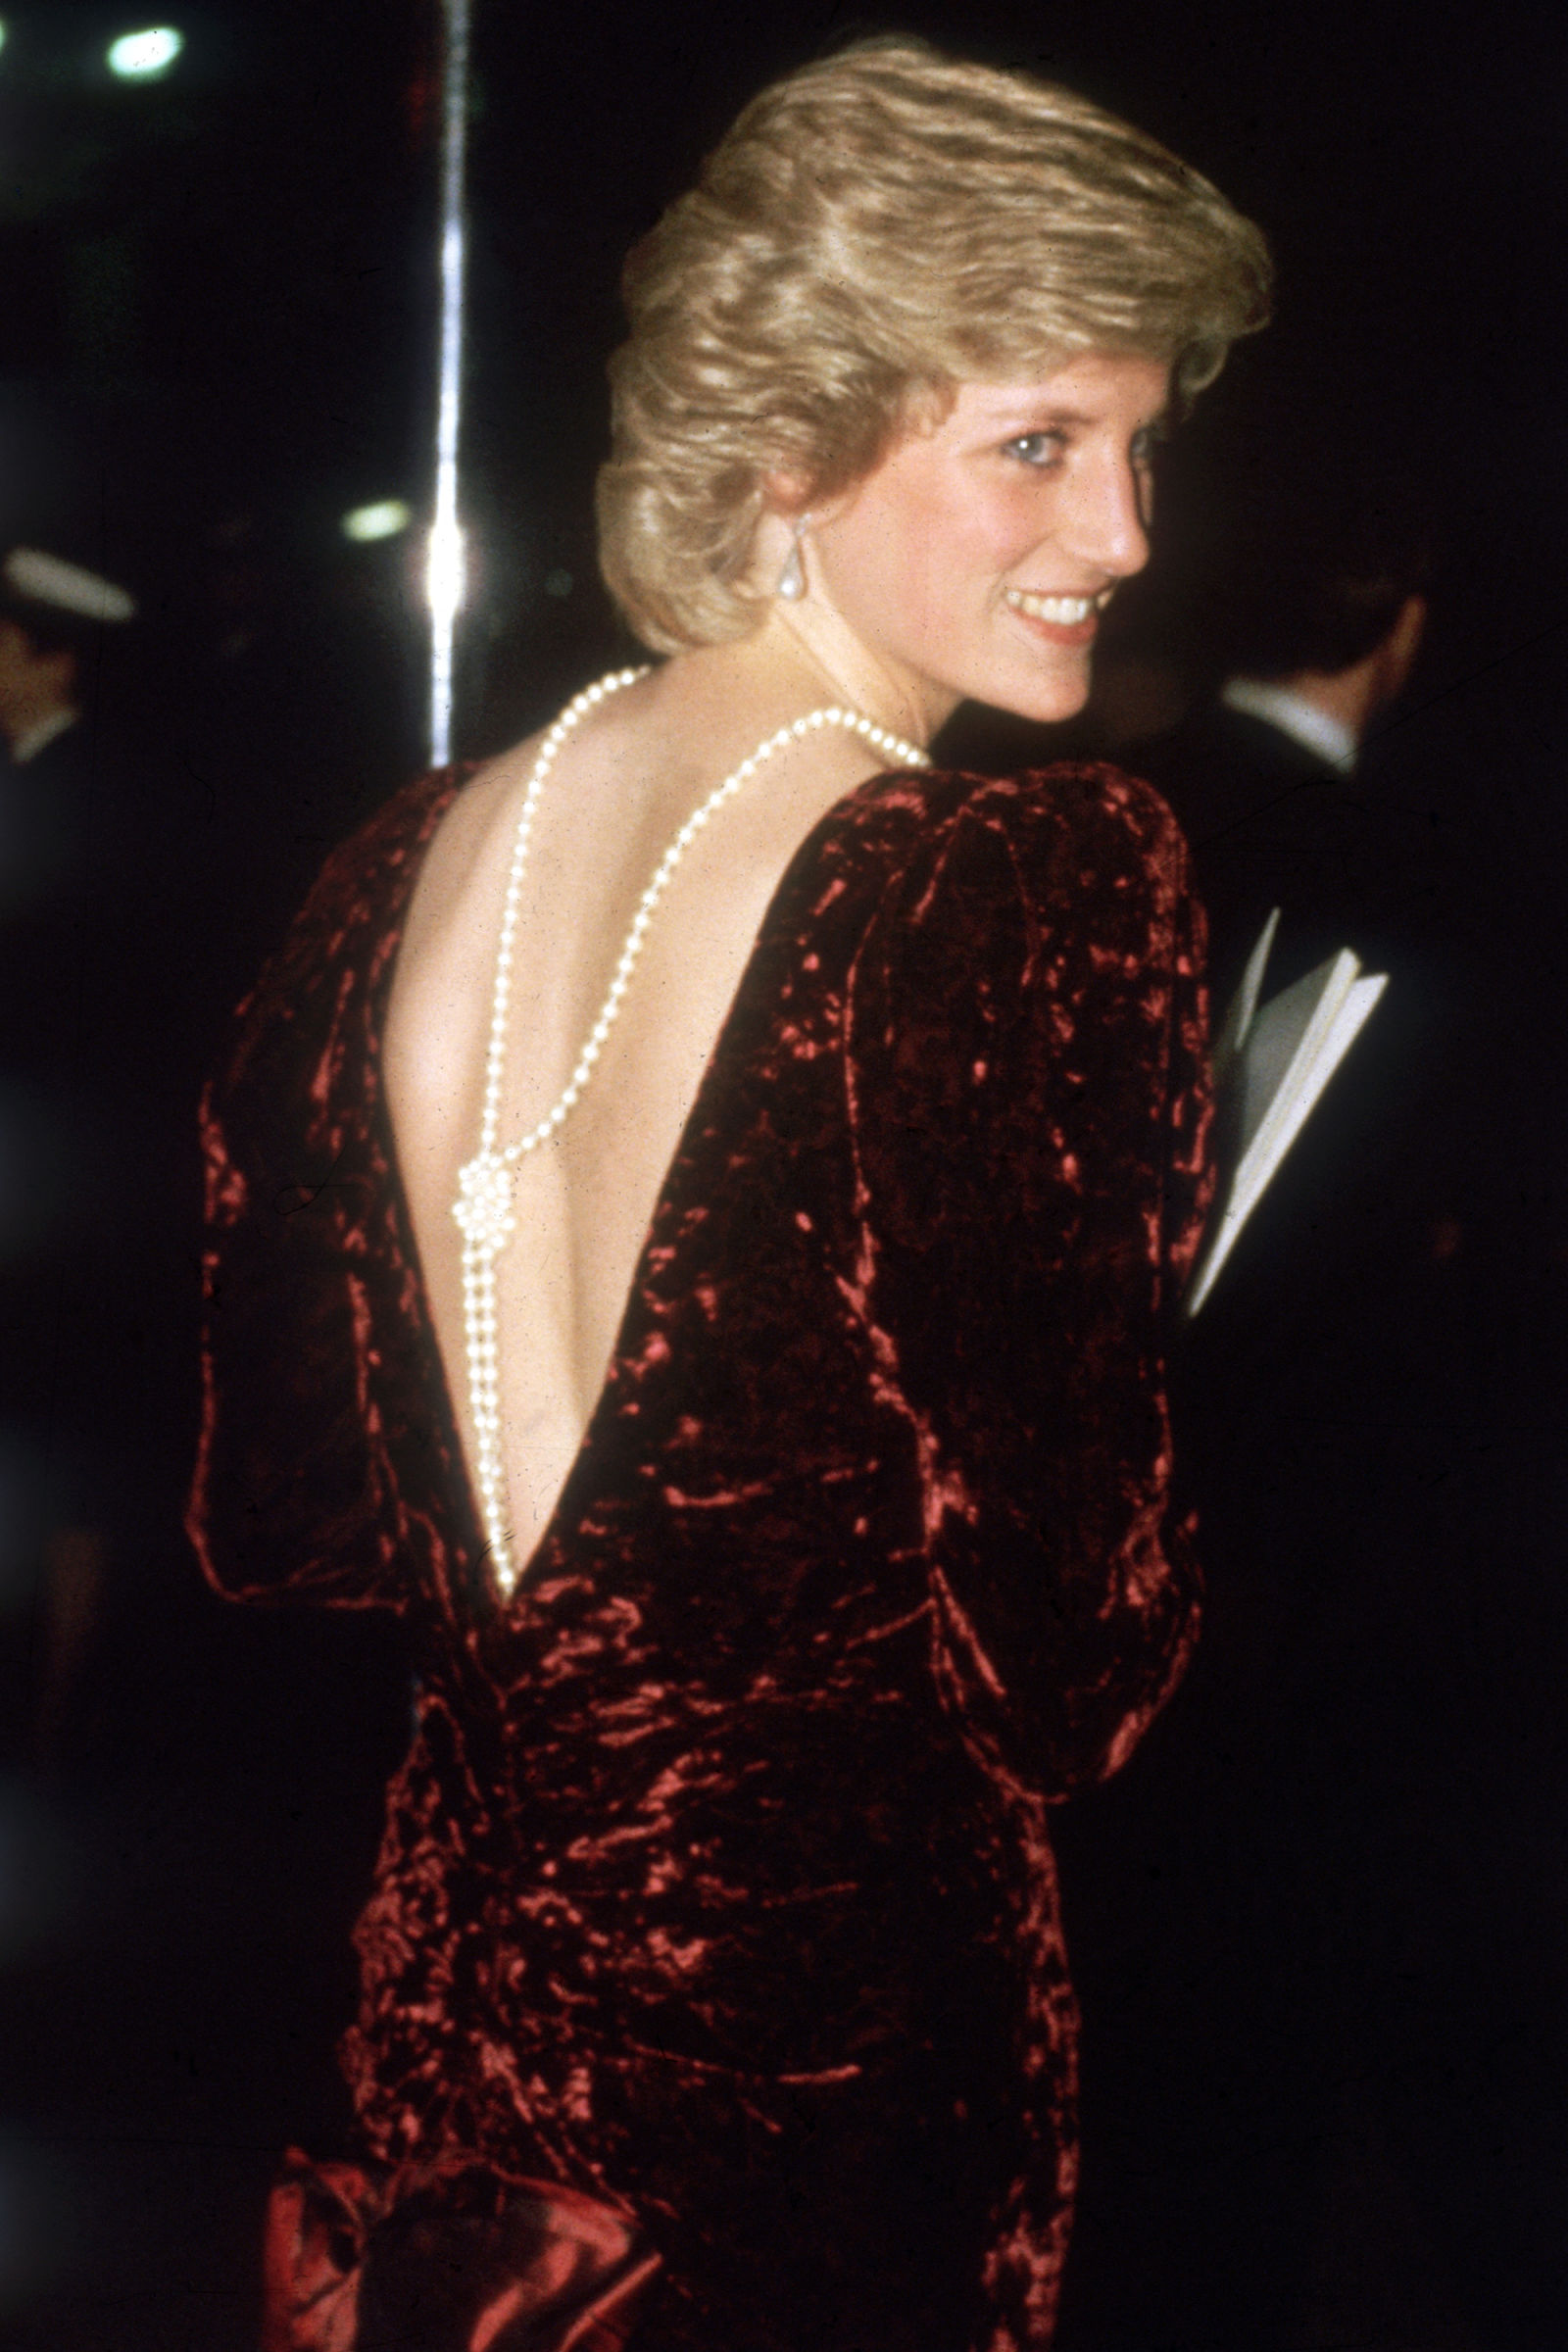 backless-dress-princess-diana